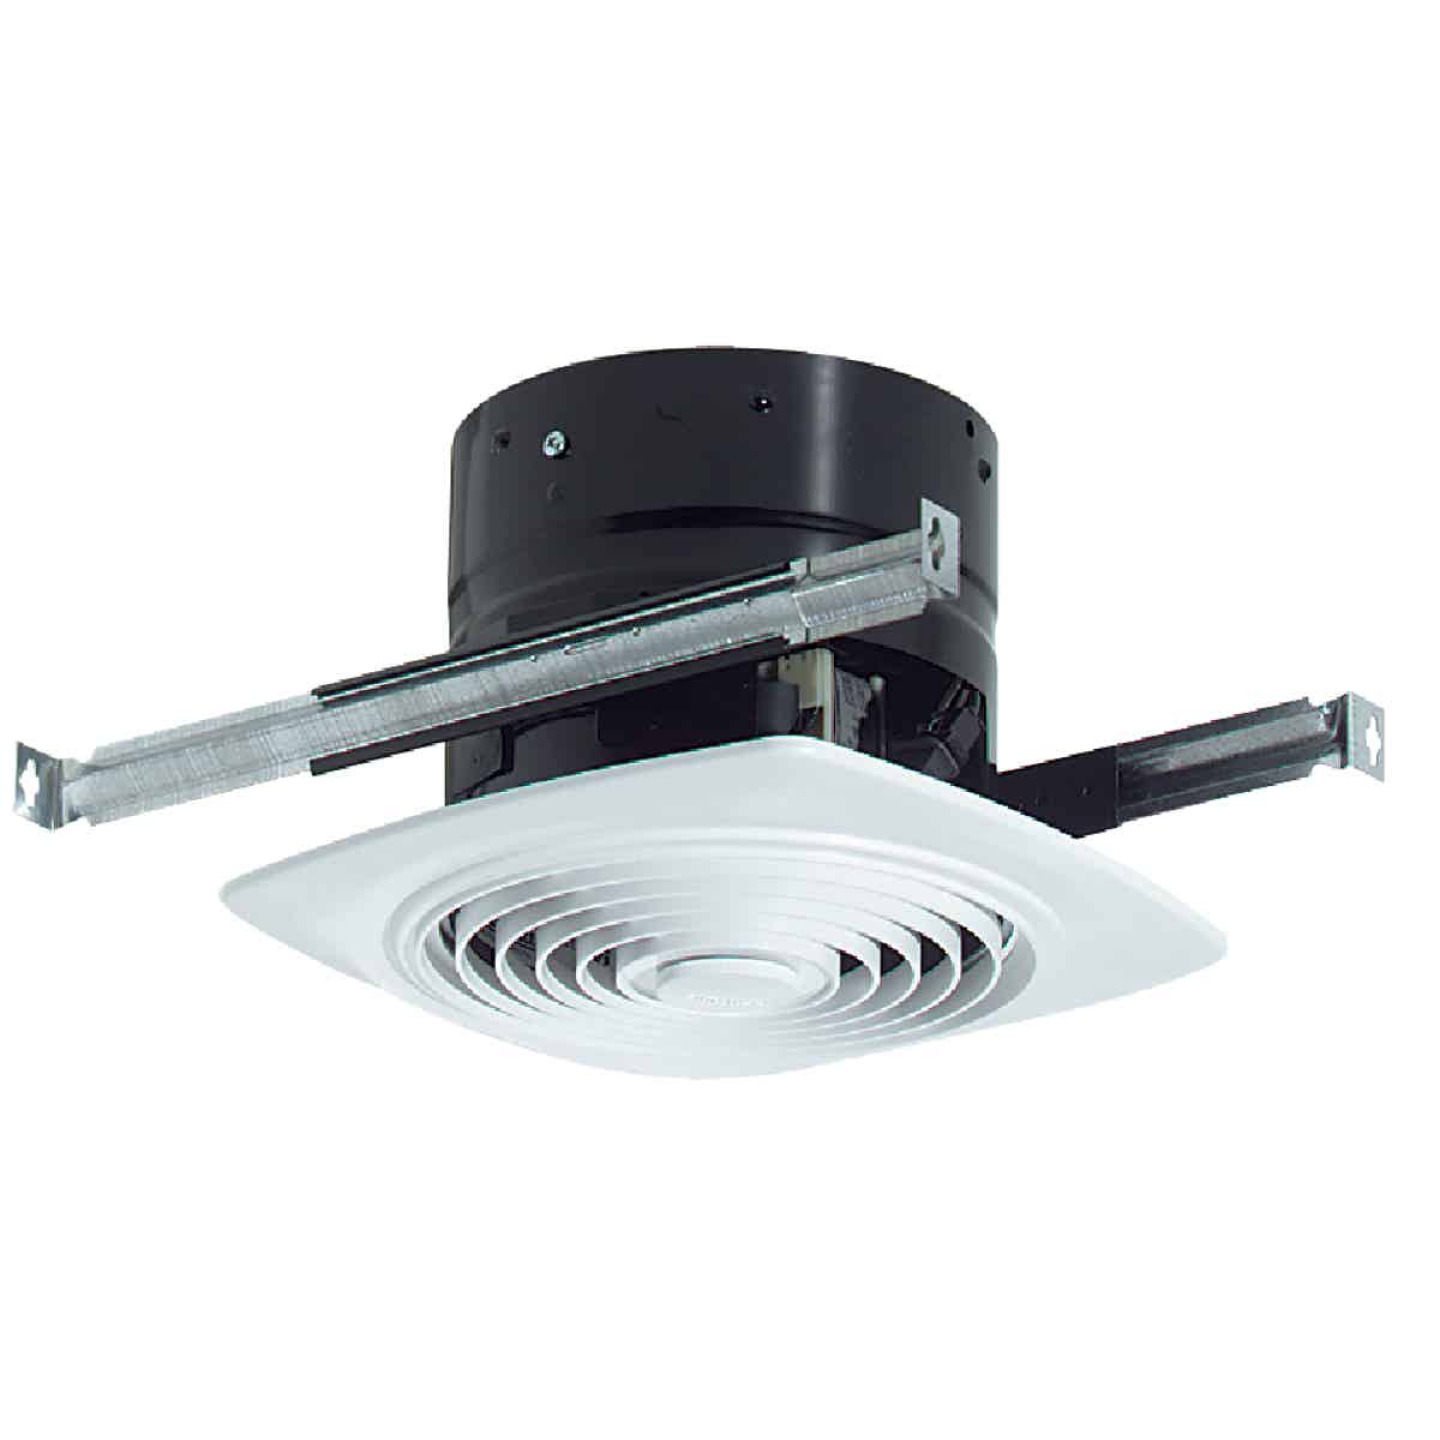 Broan 180 CFM 5.0 Sones 120V Bath Exhaust Fan Image 1